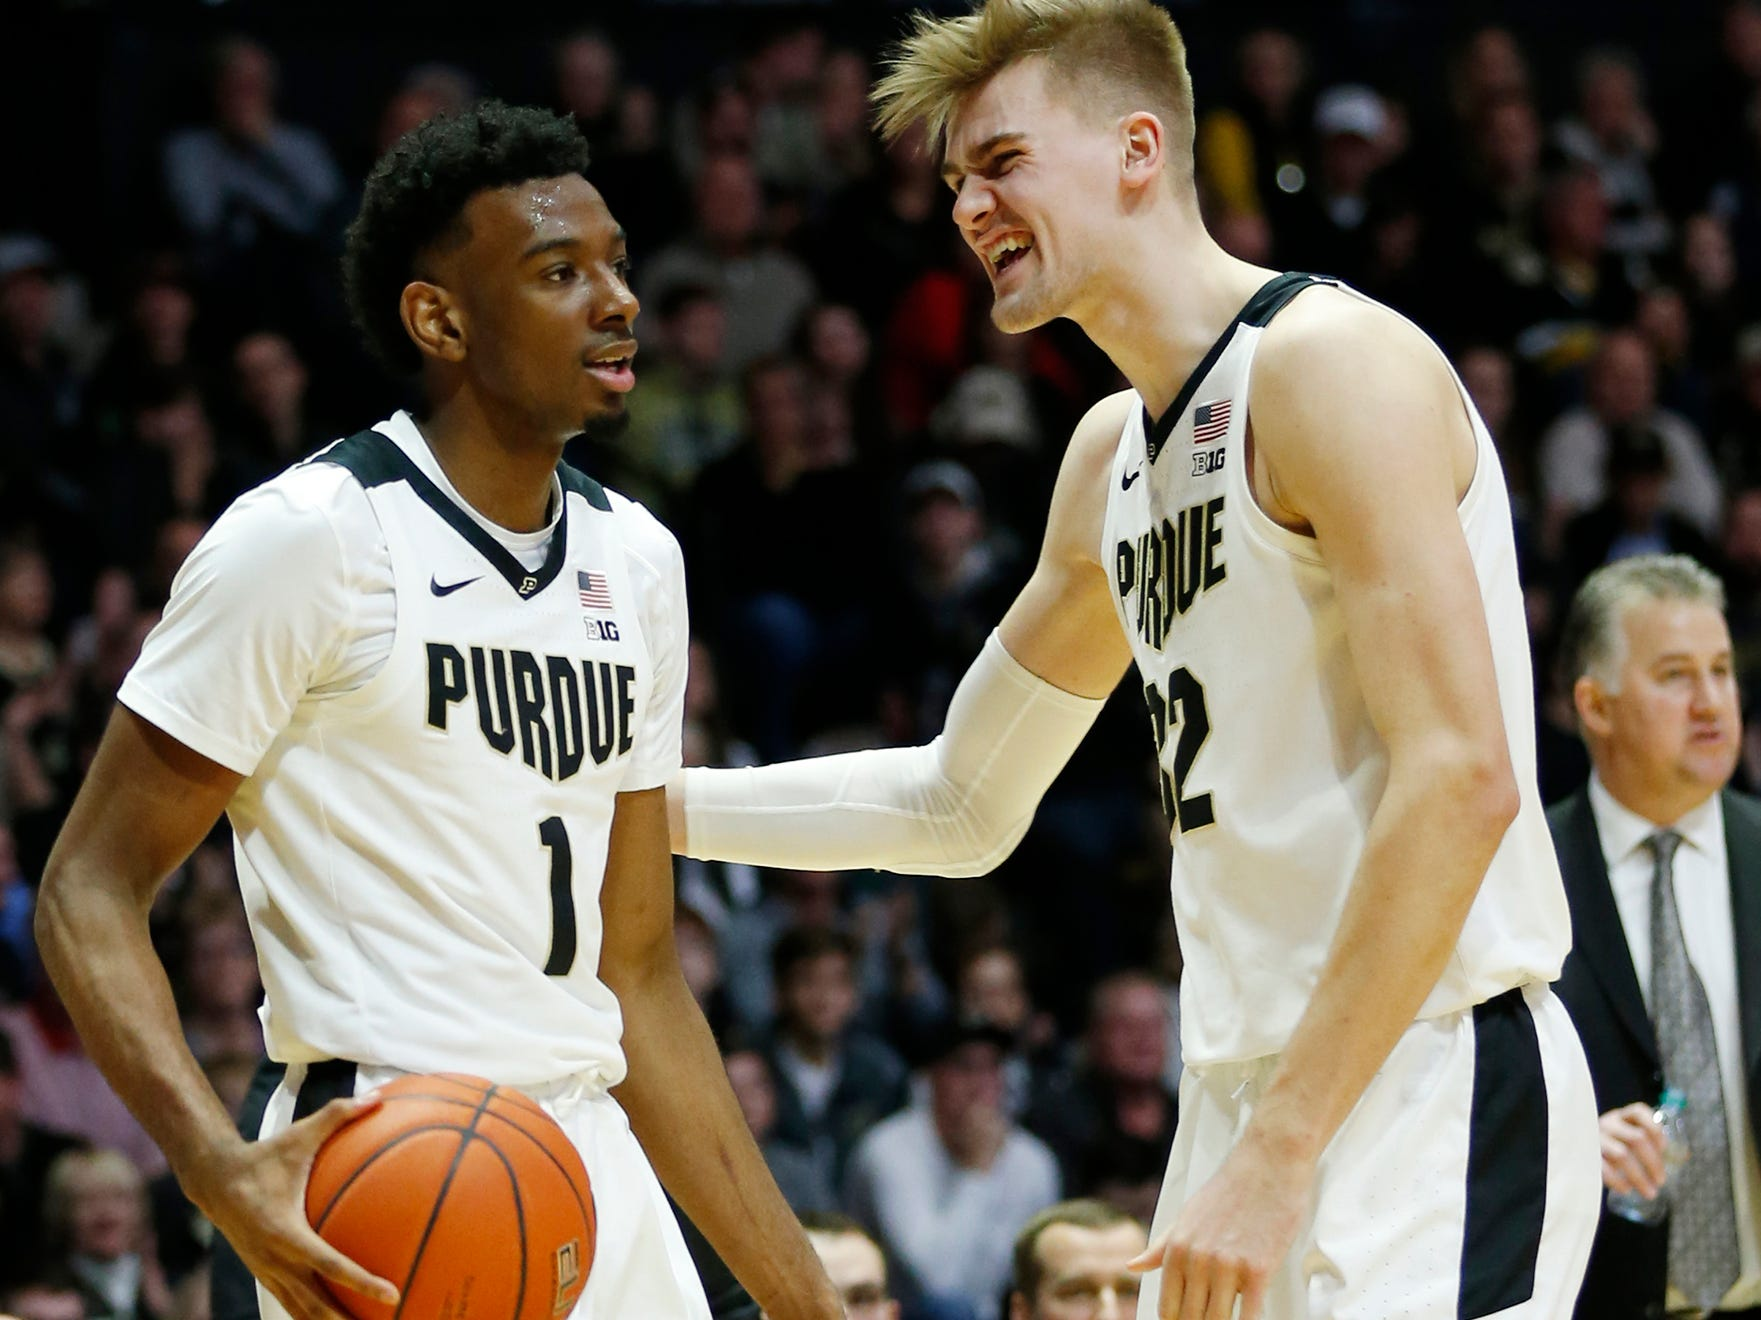 Matt Haarms of Purdue congratulates teammate Aaron Wheeler after Wheeler hauled in an offensive rebound and drew a Belmont foul Saturday, December 29, 2018, at Mackey Arena. Purdue defeated Belmont 73-62.